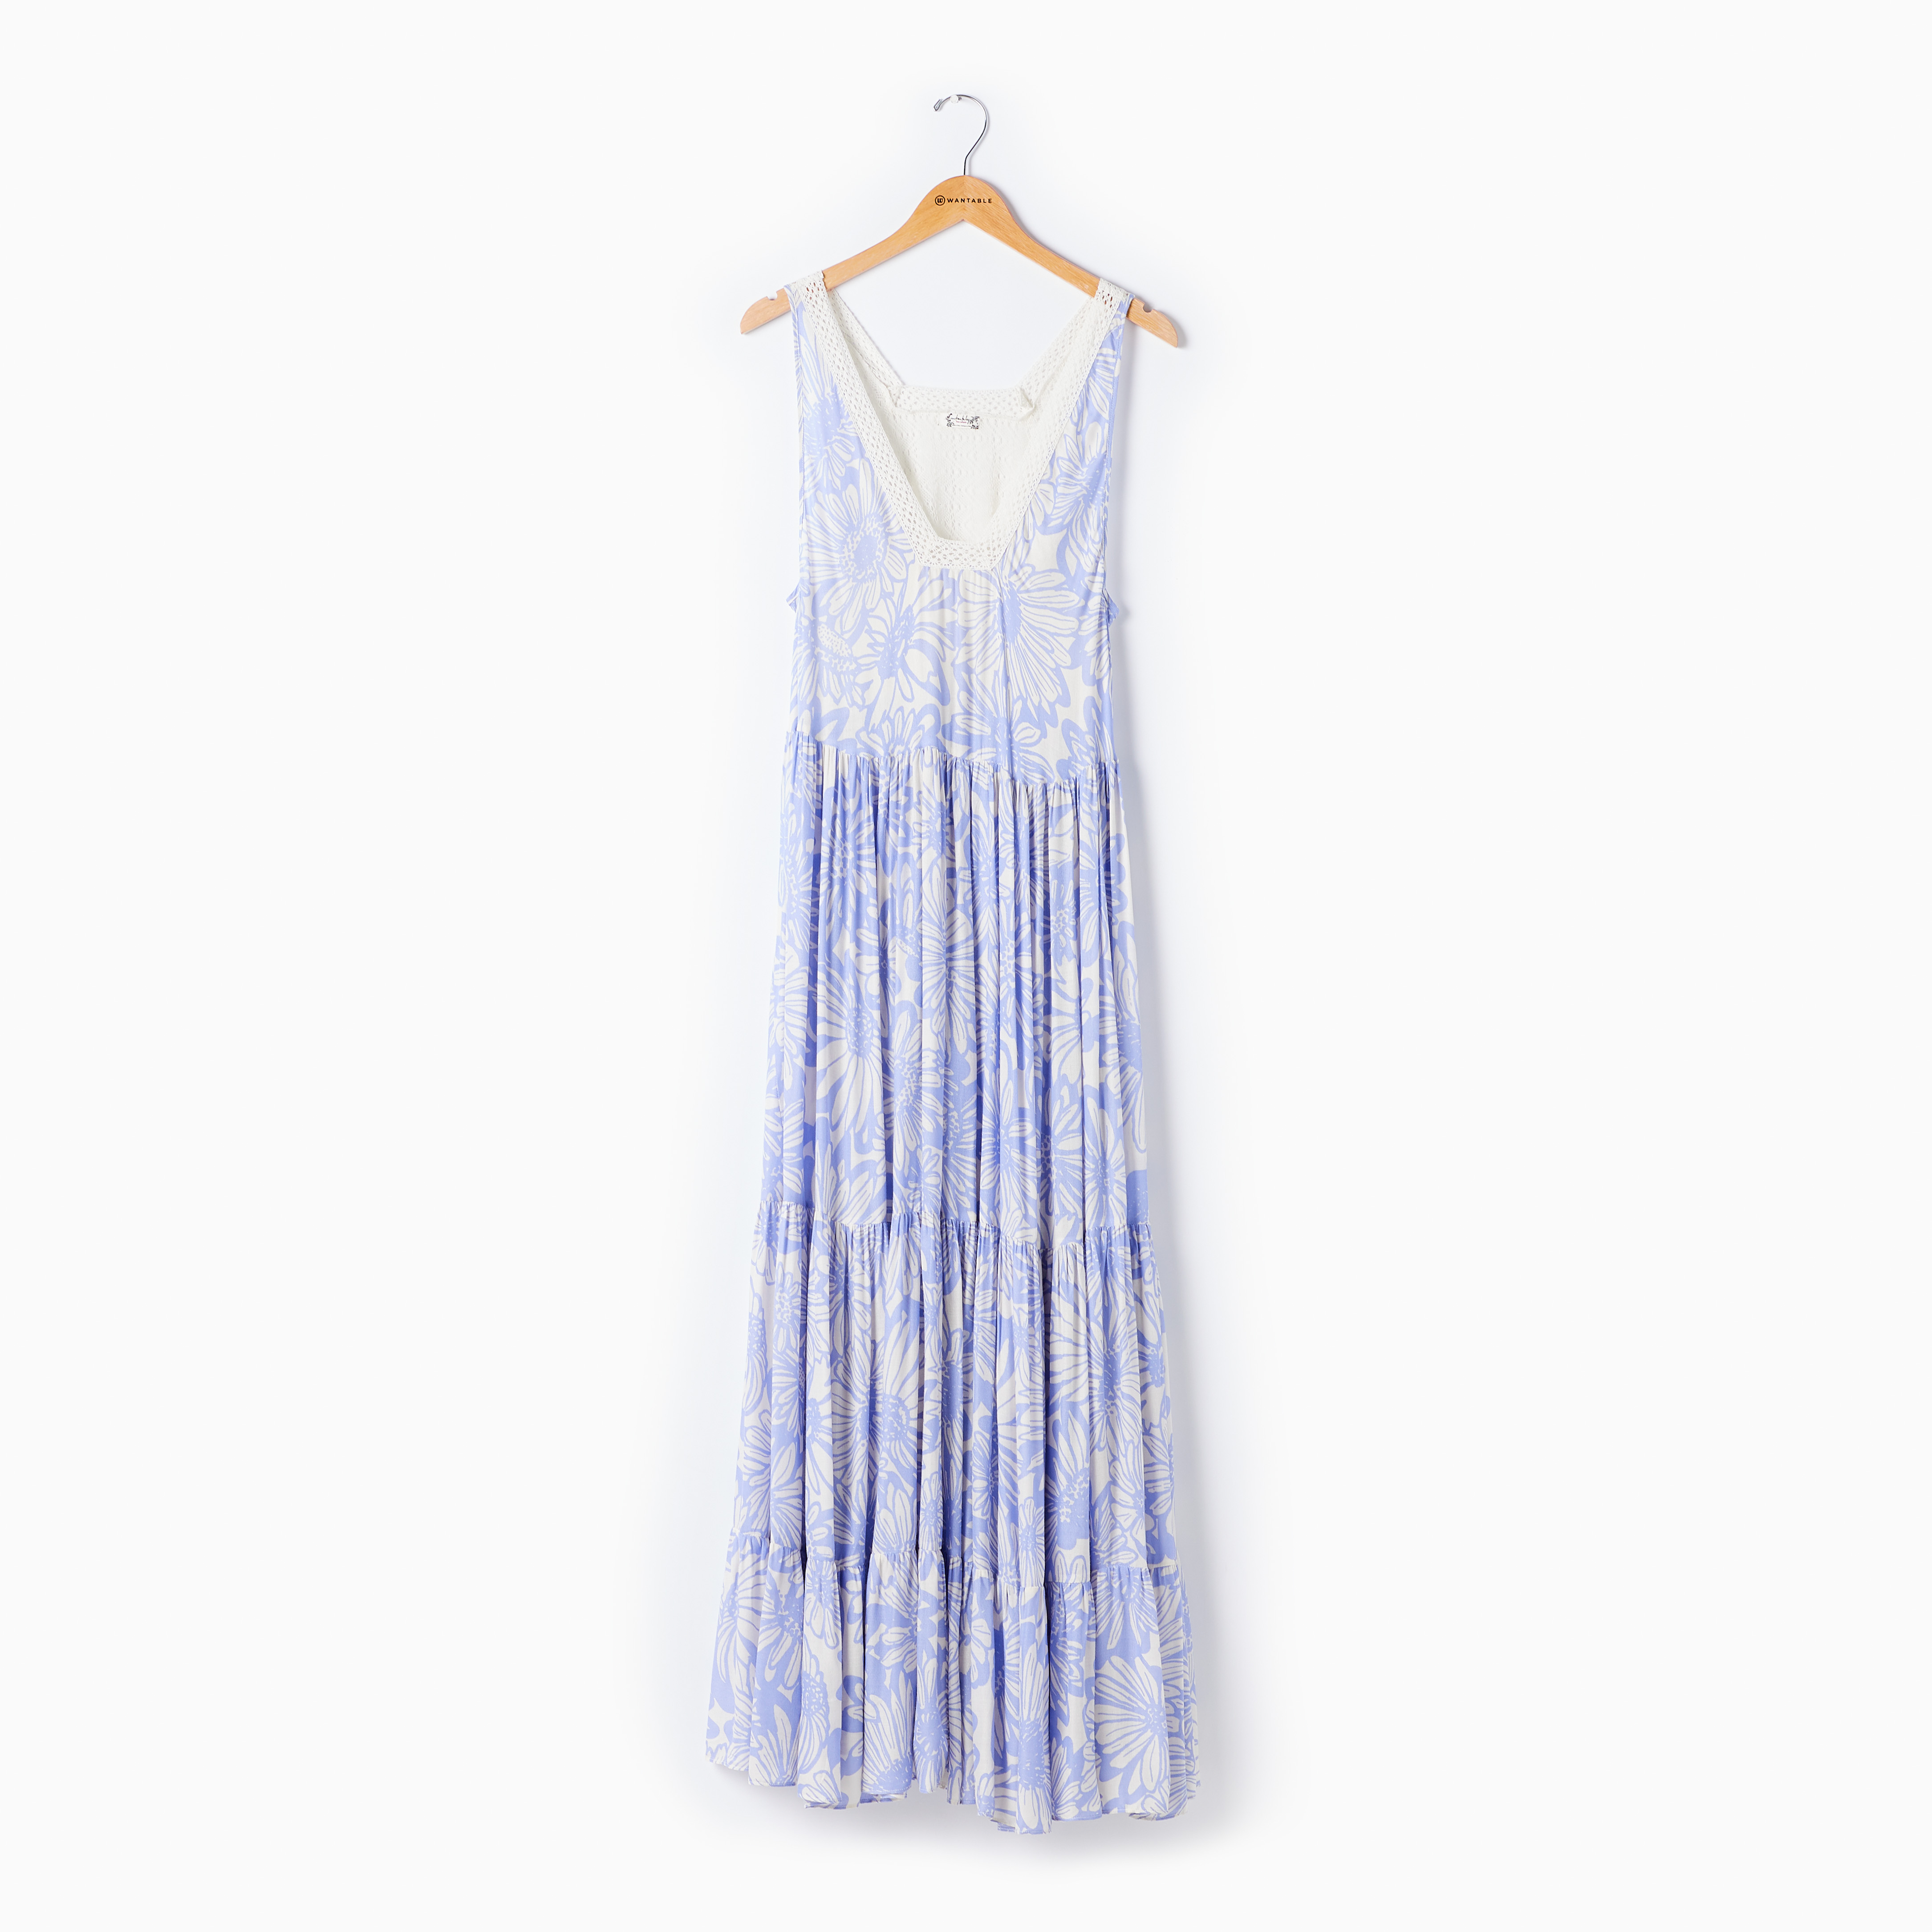 Blue floral print maxi dress on a hanger - Casual summer dress by Free People